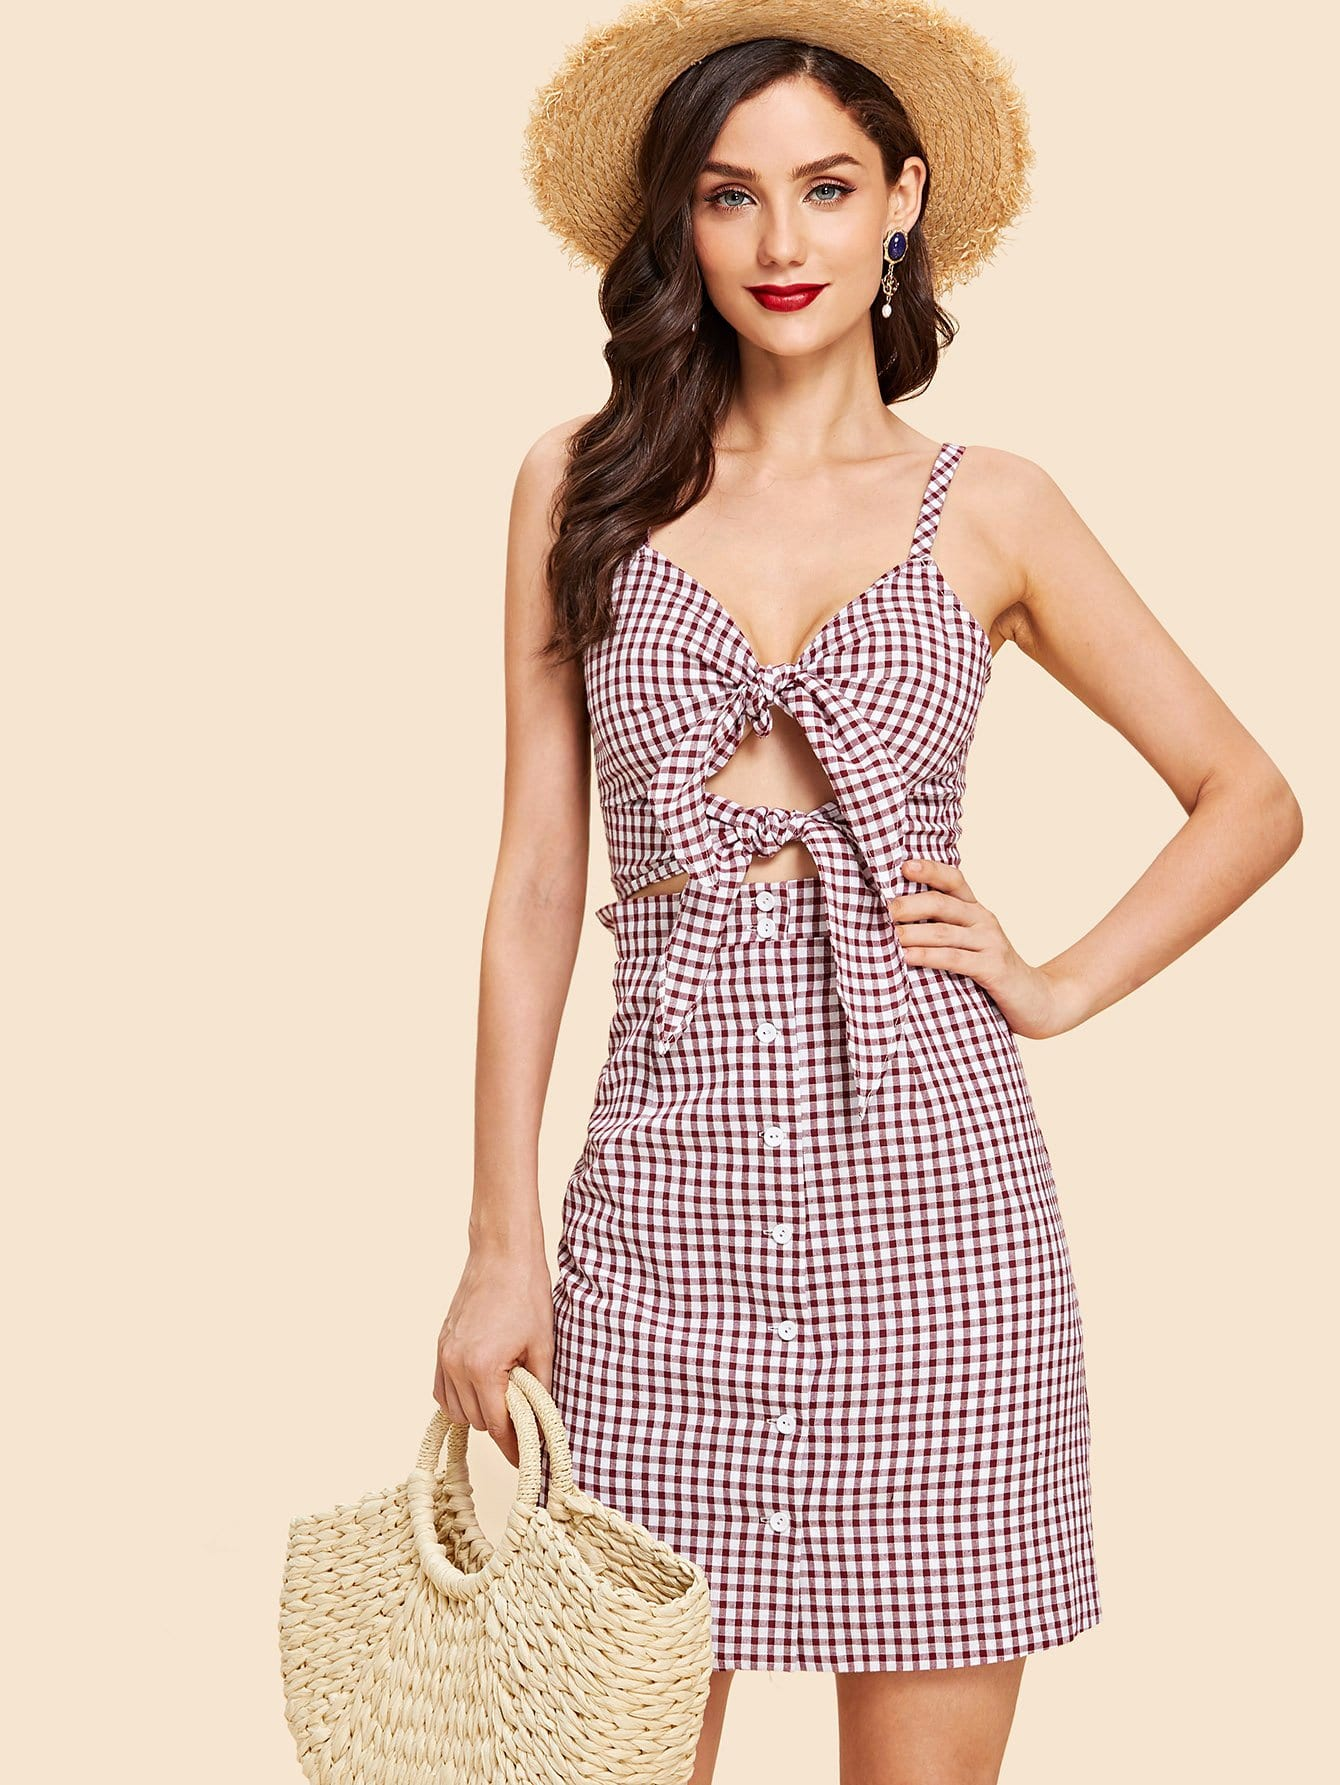 Knotted Cutout Front Button Up Gingham Cami Dress knot front cutout midriff halterneck gingham dress